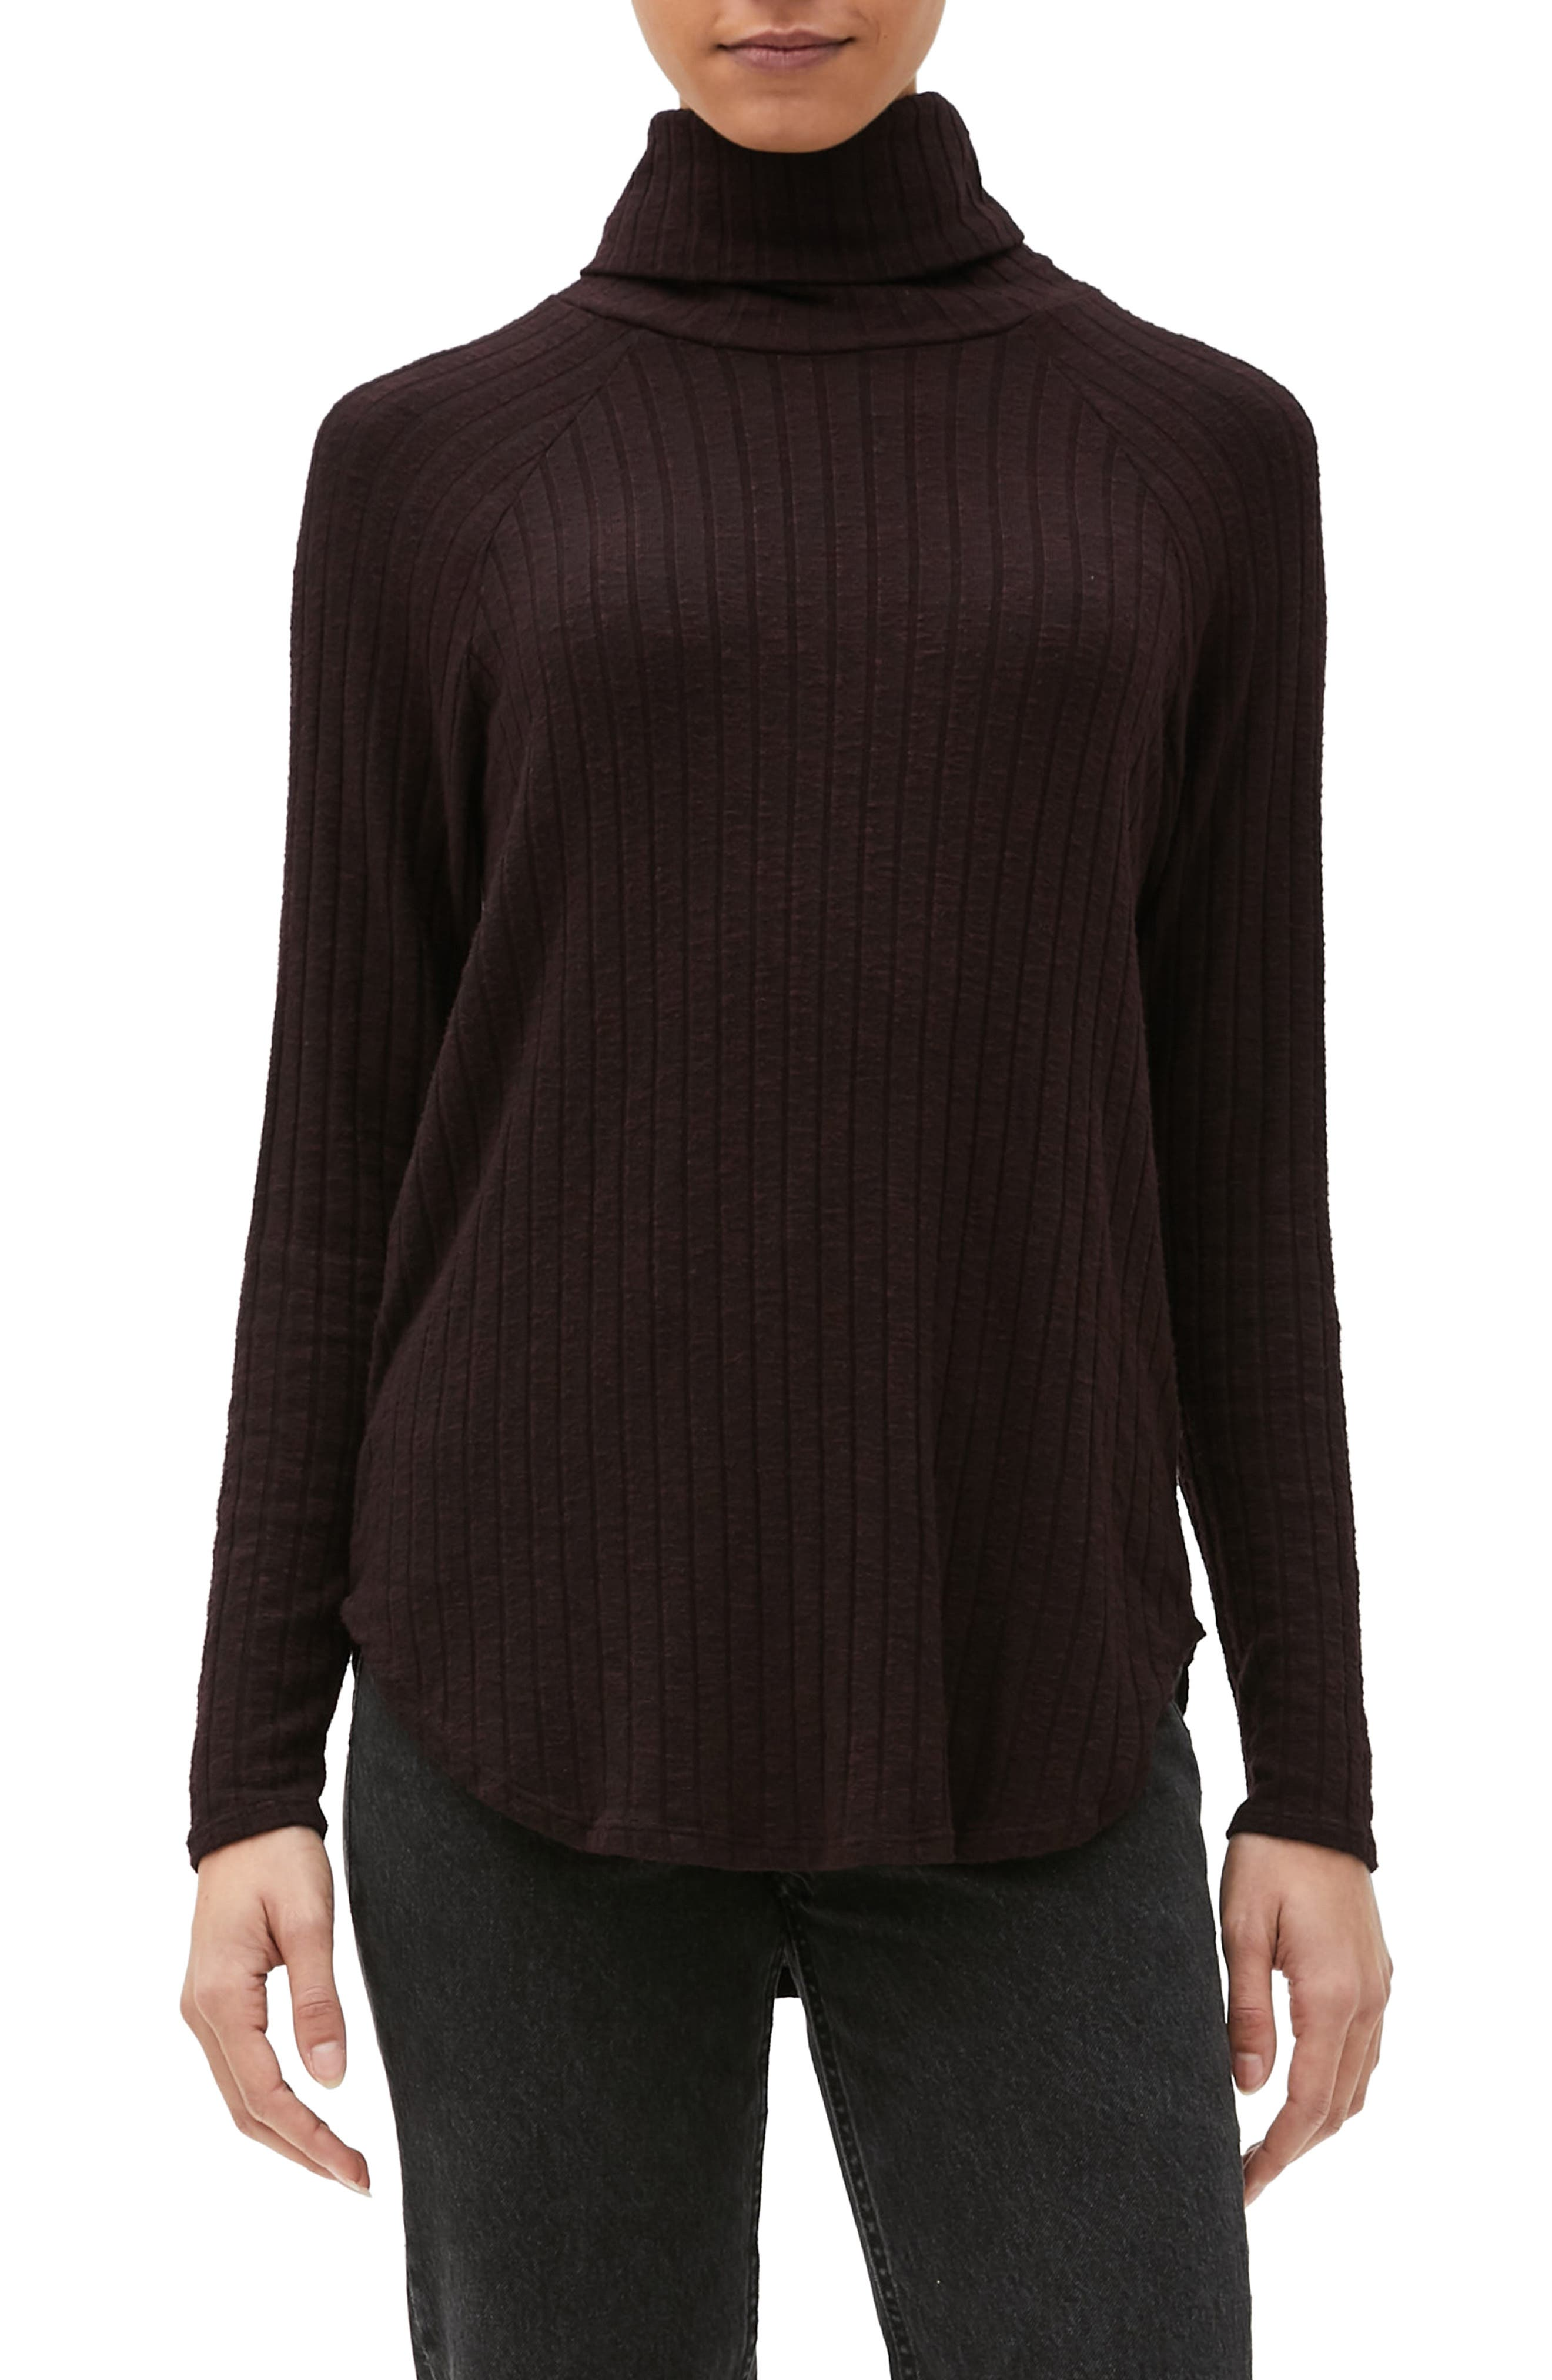 A versatile, solid-colored turtleneck is headed right for regular rotation thanks to its wide ribbed texture and curved high/low hemline. Style Name: Michael Stars Amelia Ribbed Turtleneck Top. Style Number: 6111129. Available in stores.